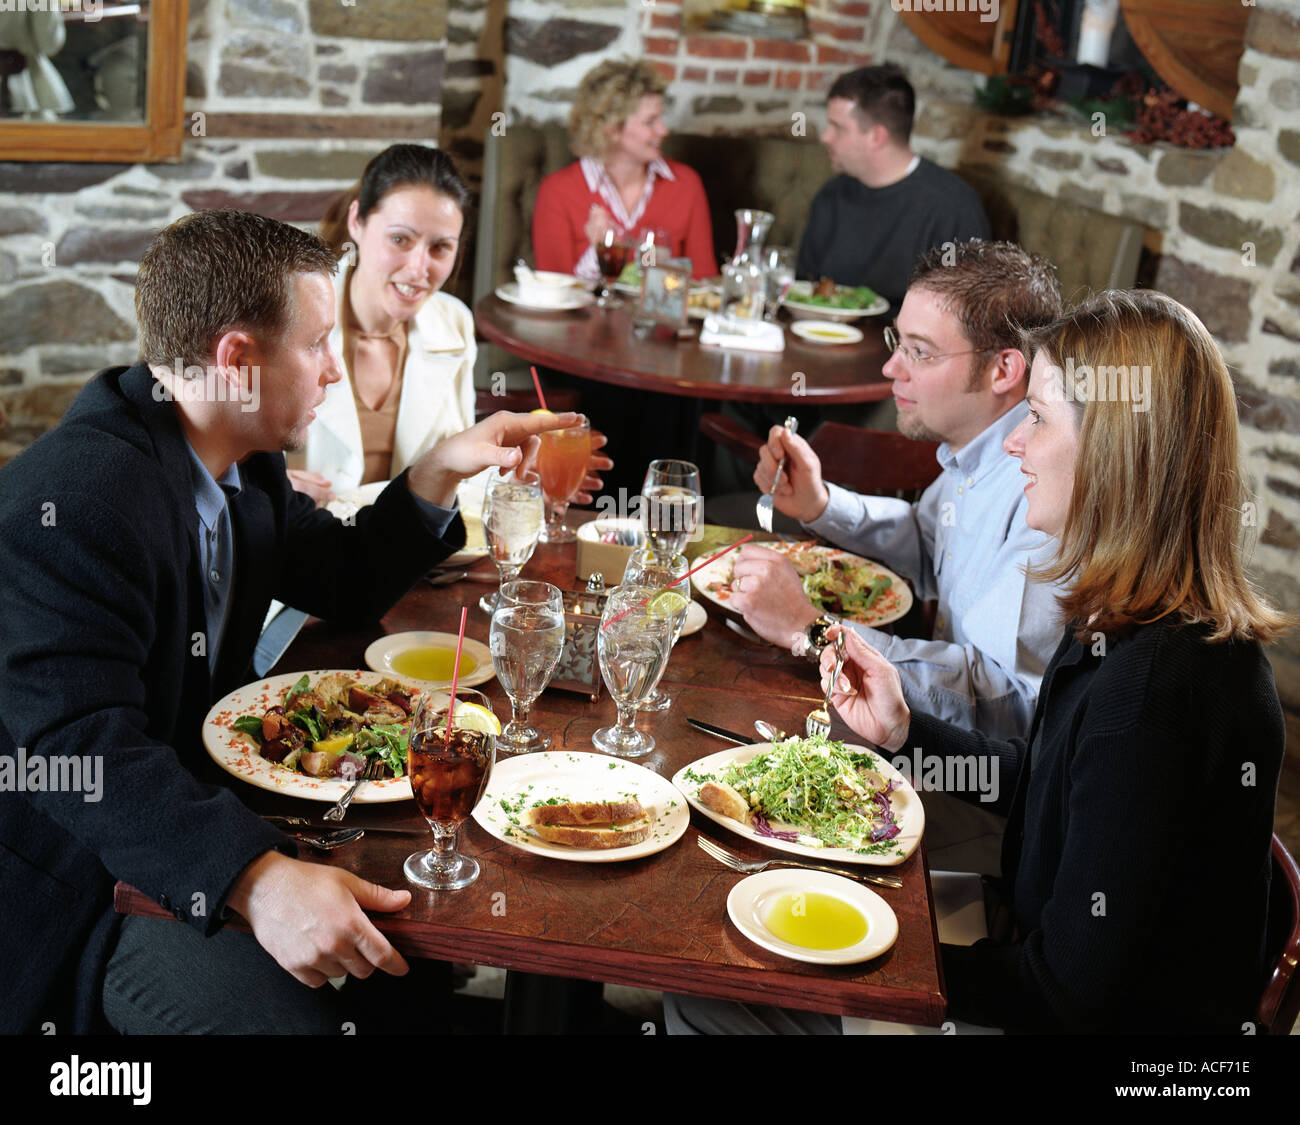 Two couples having a conversation while dining together at a restaurant Another couple sits in a corner booth behind them - Stock Image